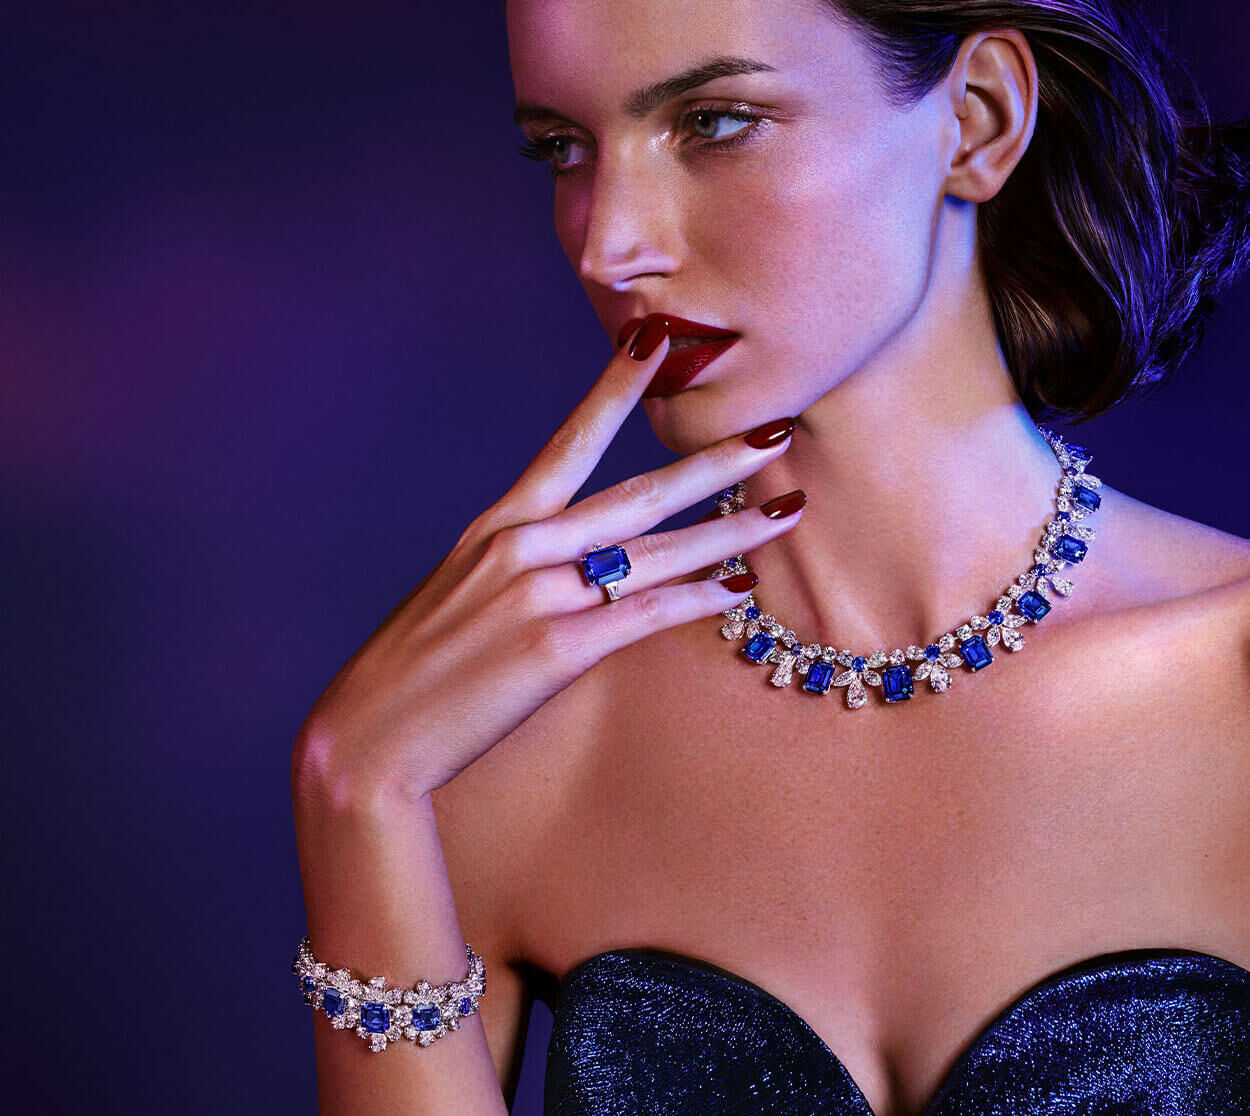 Graff high jewellery Royal Blue sapphire and diamond bracelet, Royal Blue sapphire ring and sapphire and diamond necklace and a close up image of the bracelet